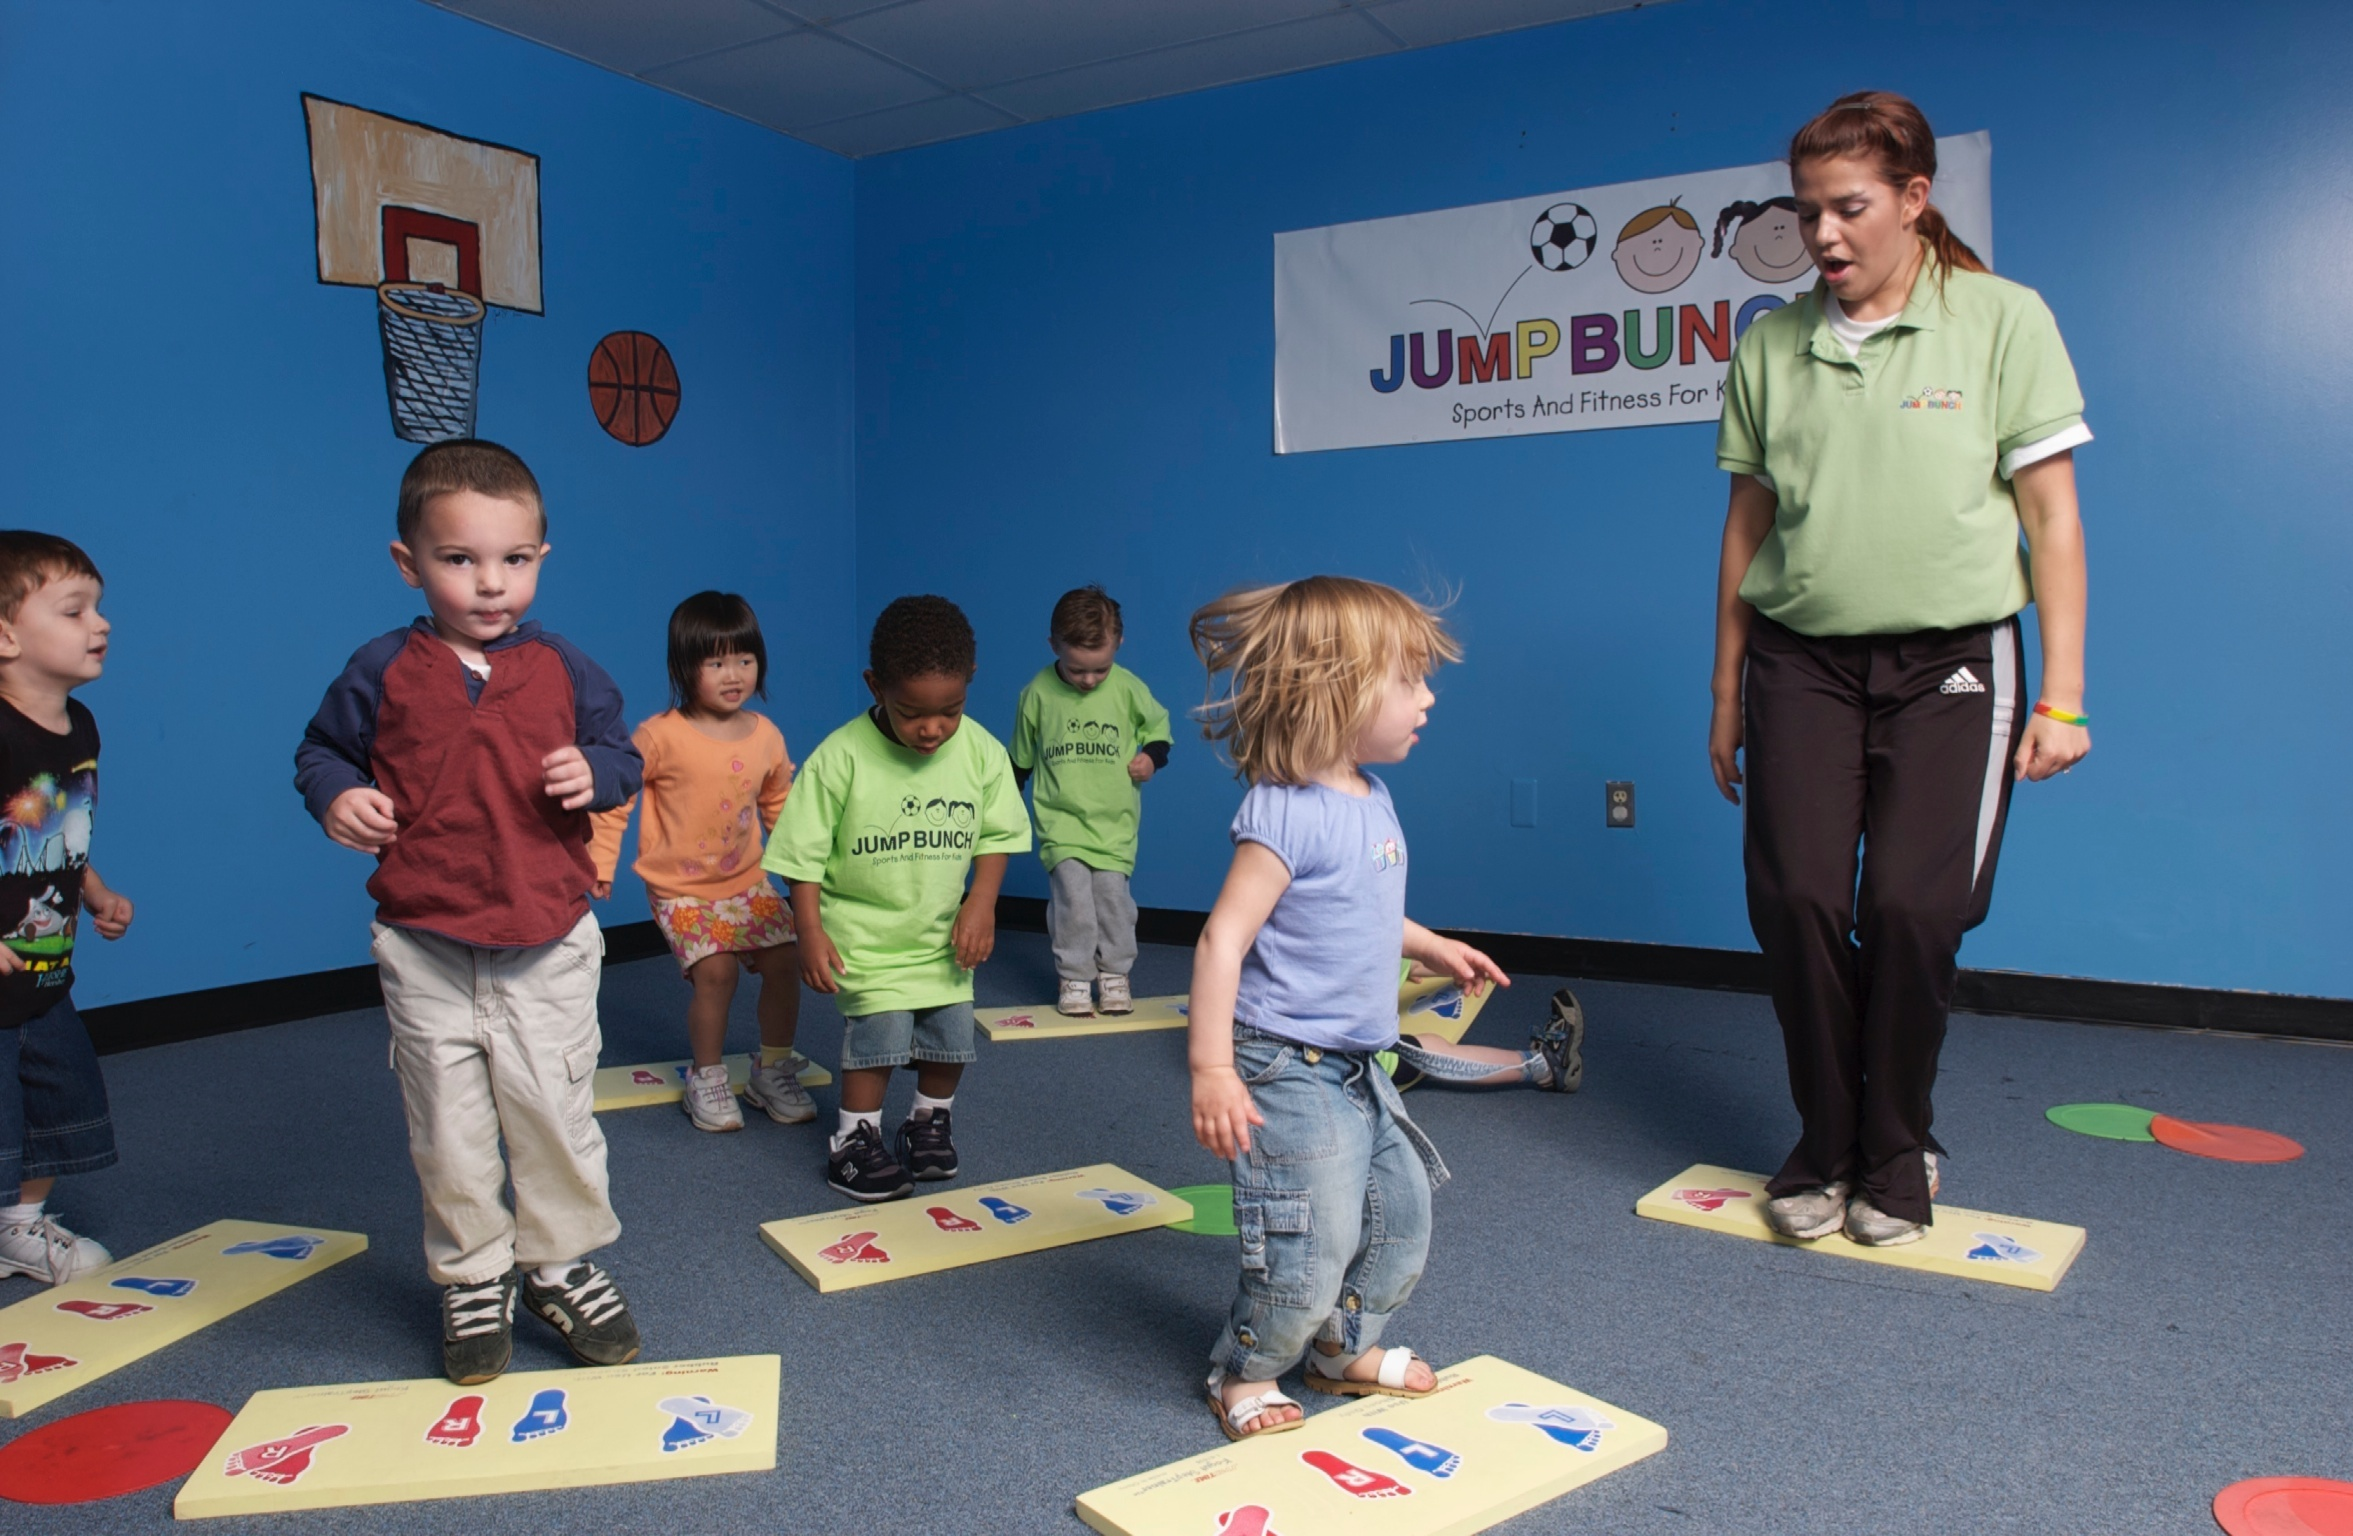 JumpBunch Chicago West | A Friendly Introduction to Sports and Fitness!